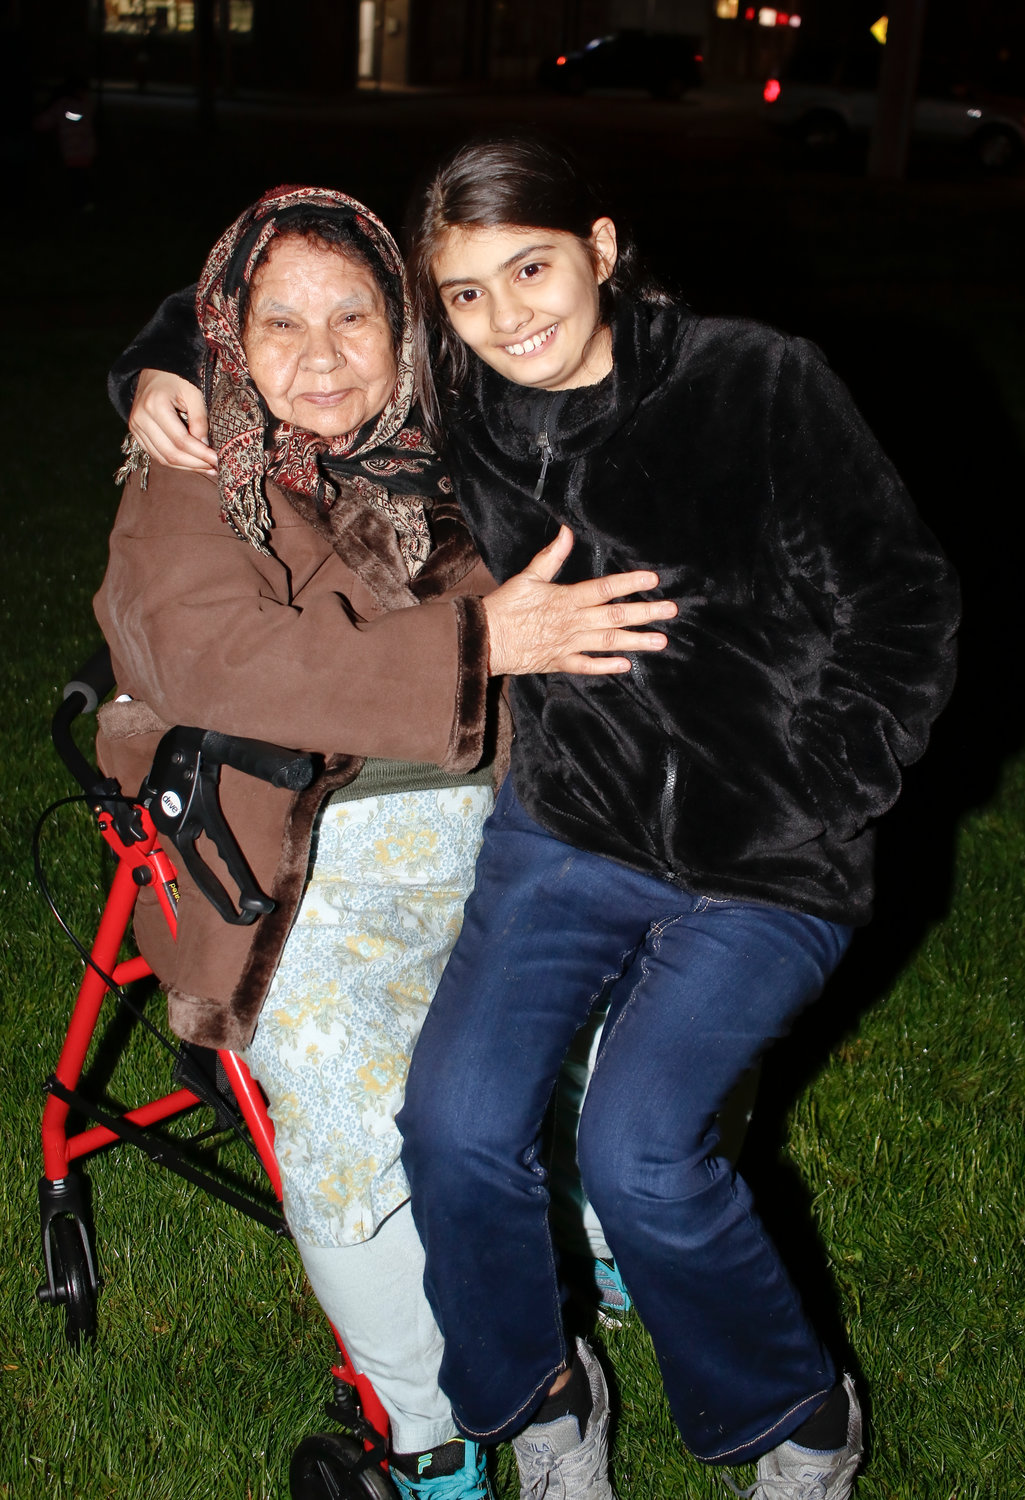 Nafees Begum, 74, with her 13-year-old granddaughter Ansa Kahn.